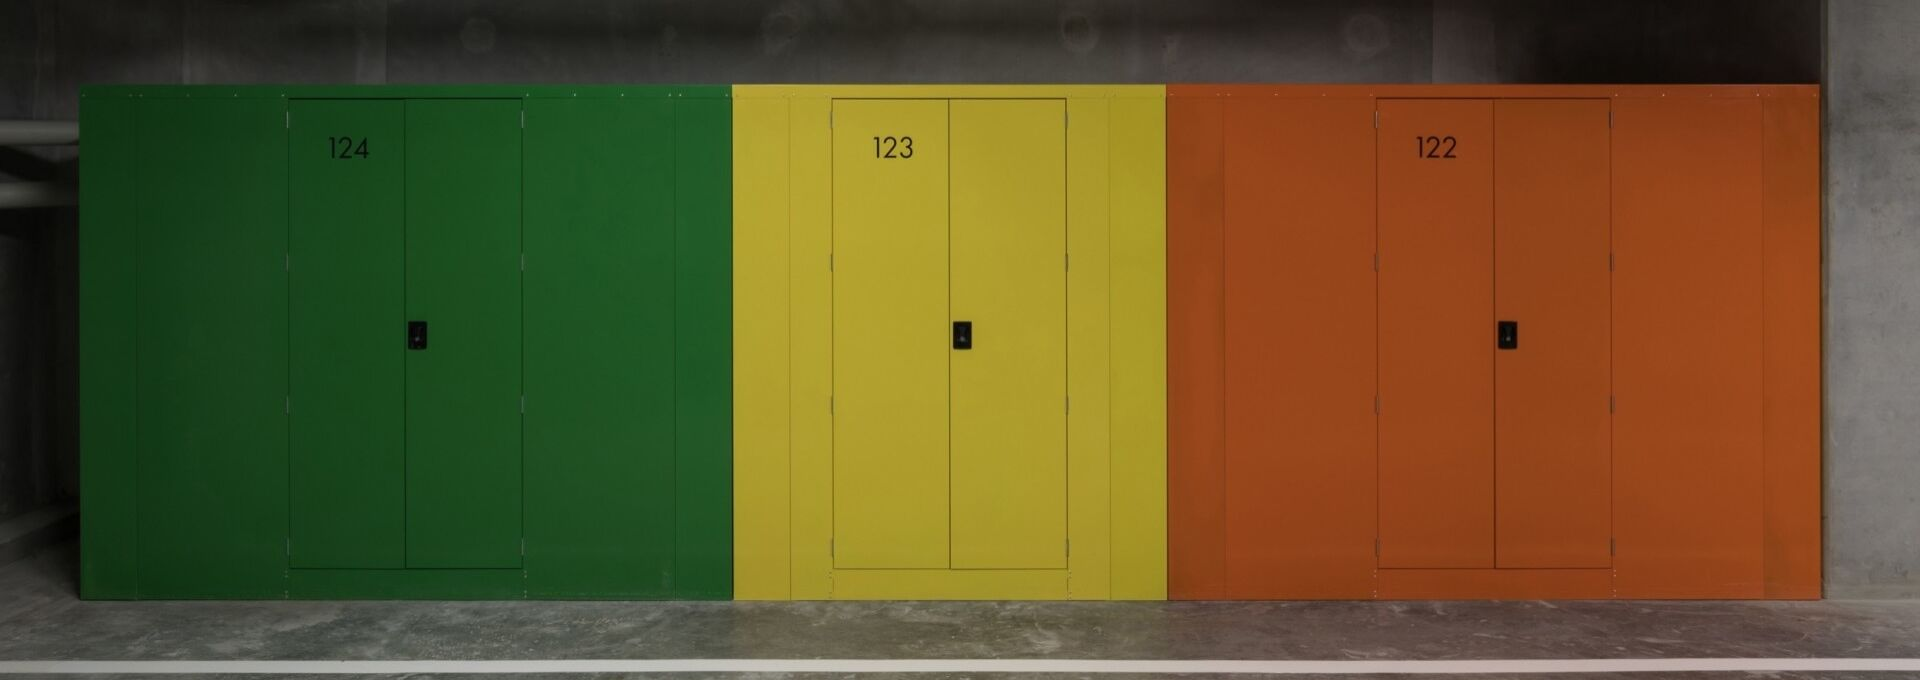 projects_st_marks_lockers_5